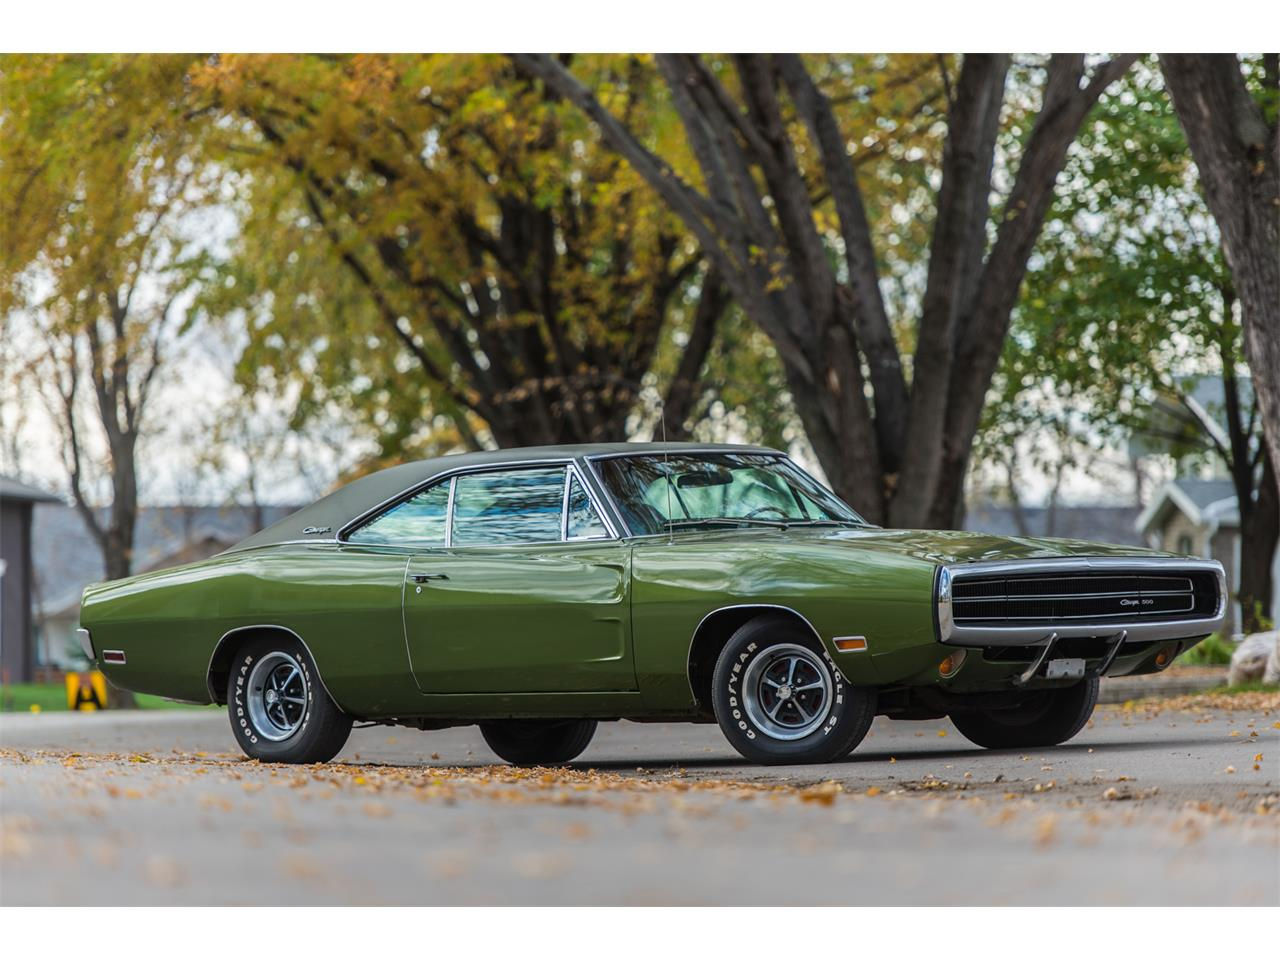 Large Picture of 1970 Charger located in walhalla North Dakota - $49,500.00 Offered by a Private Seller - H702